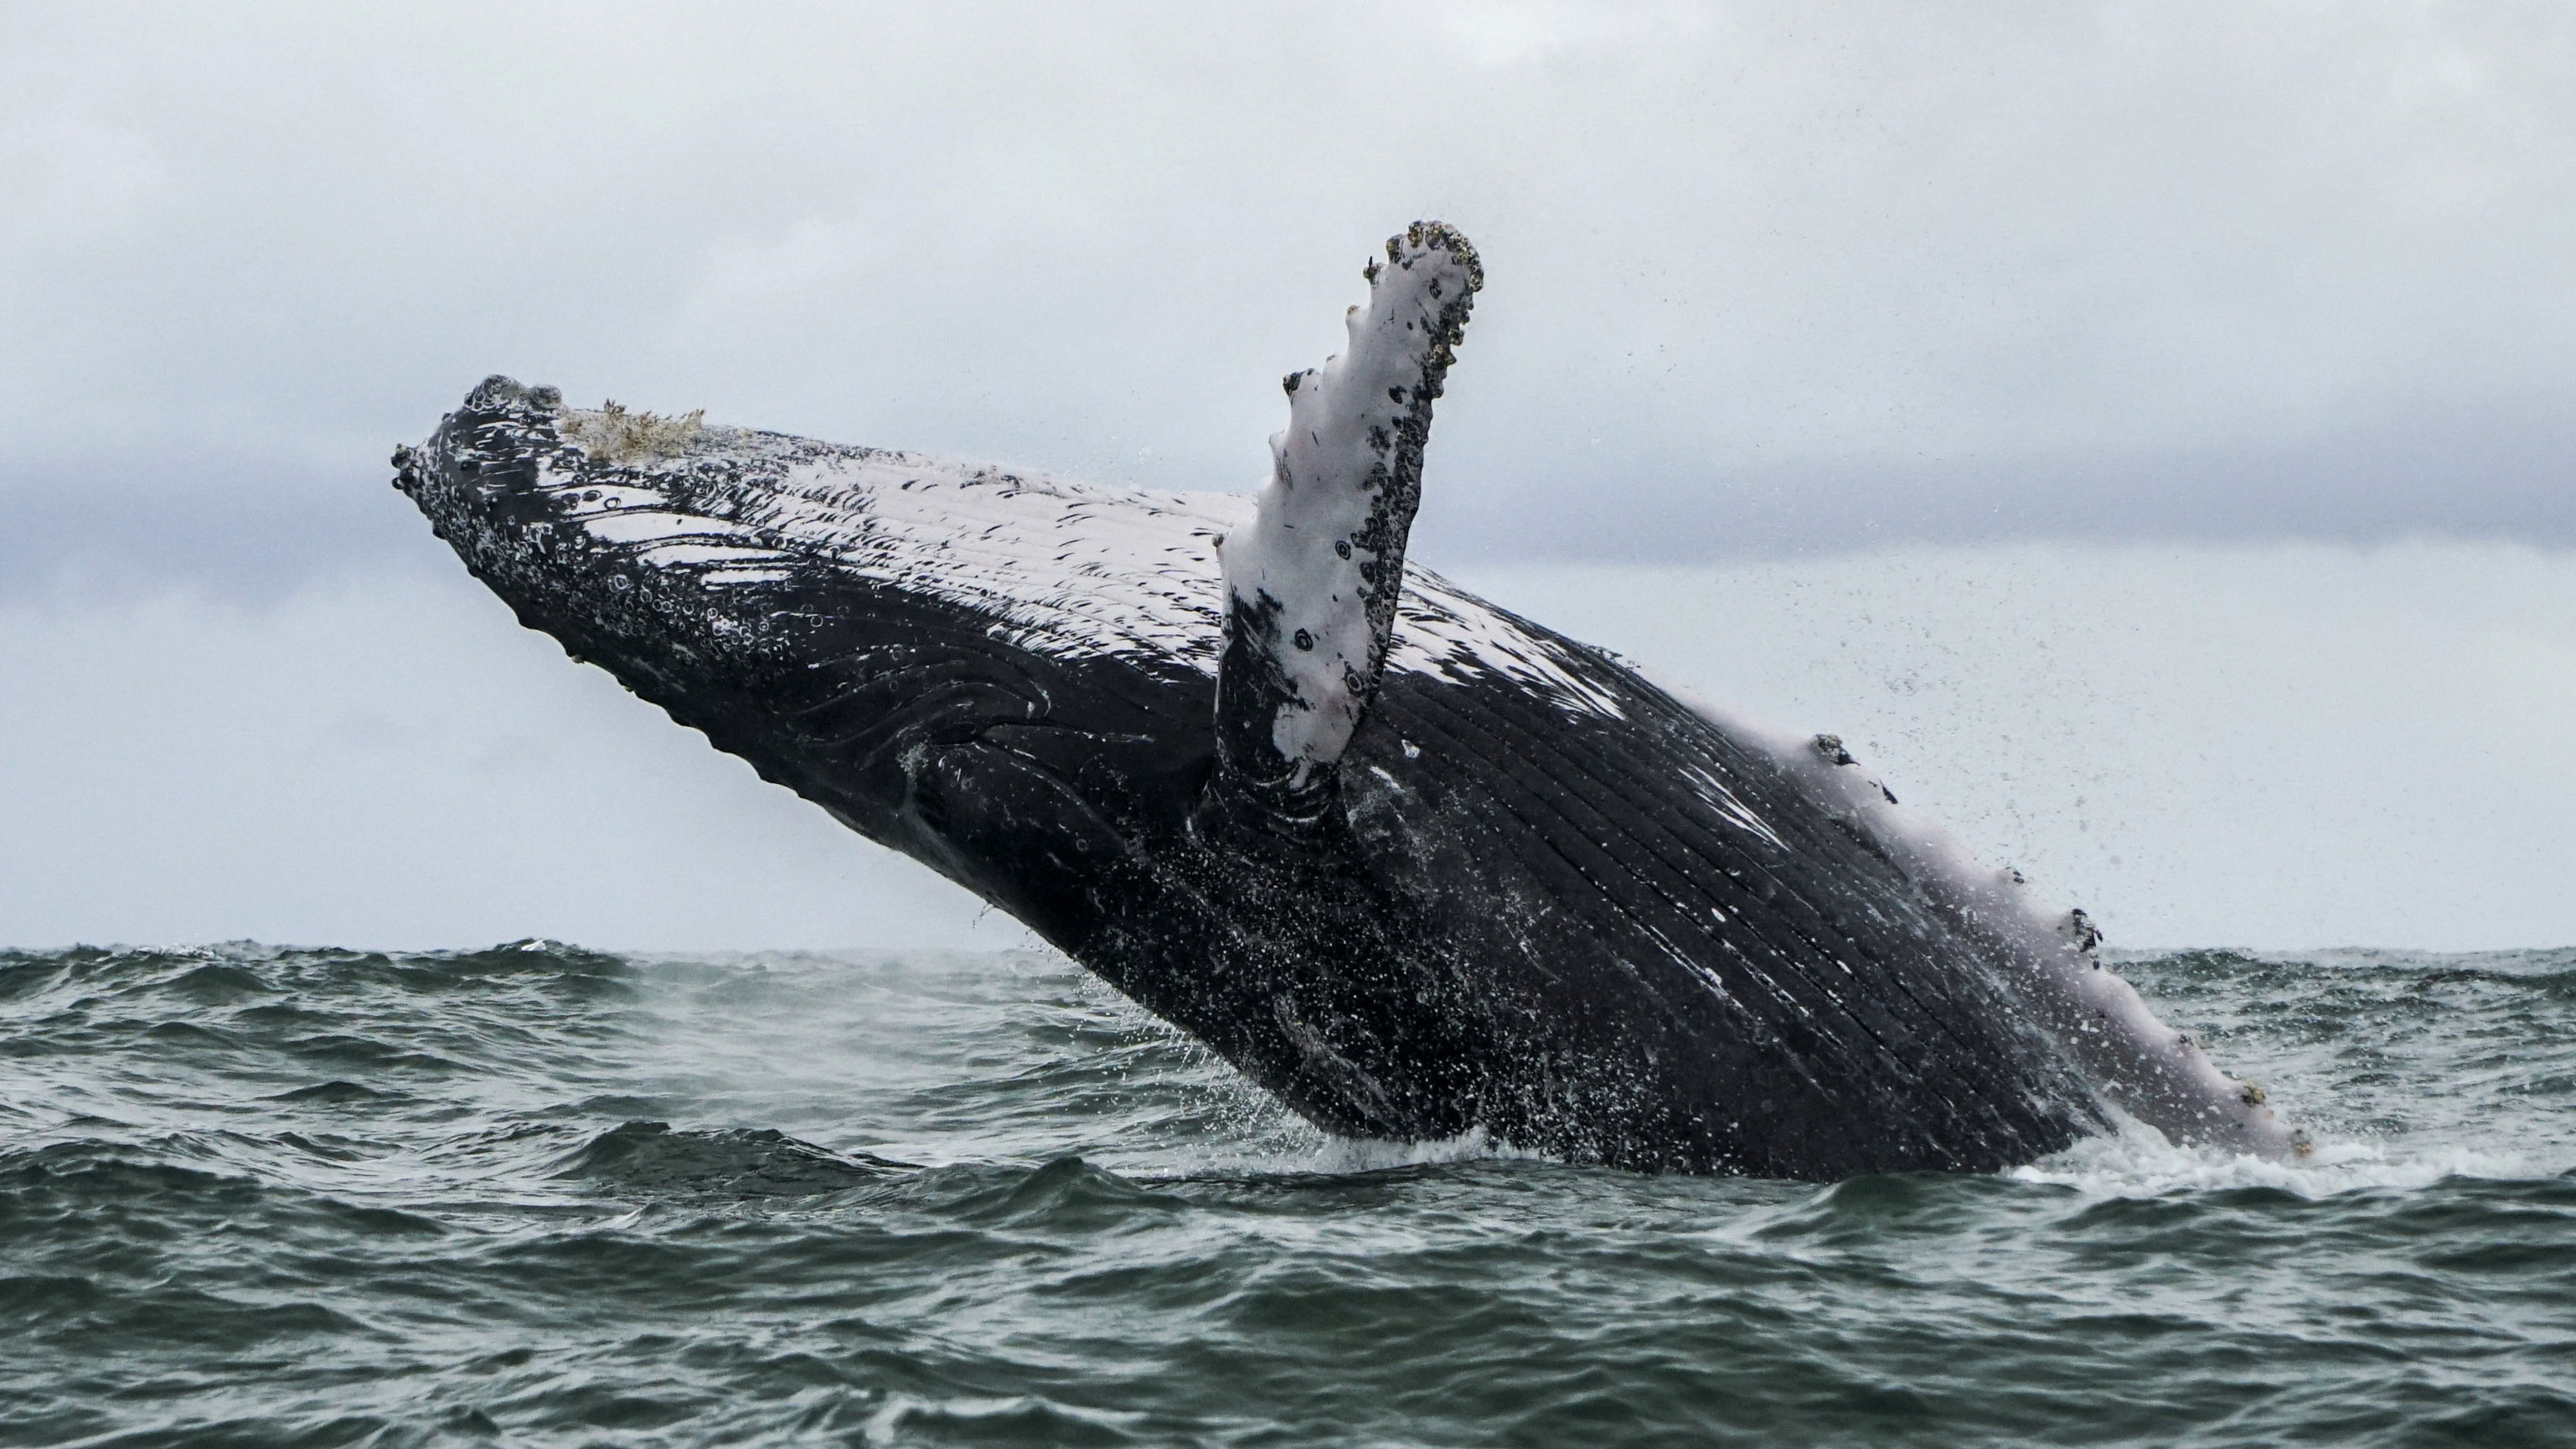 Oil Spill in Brazil Hits Breeding Grounds for Humpback Whales - Bloomberg